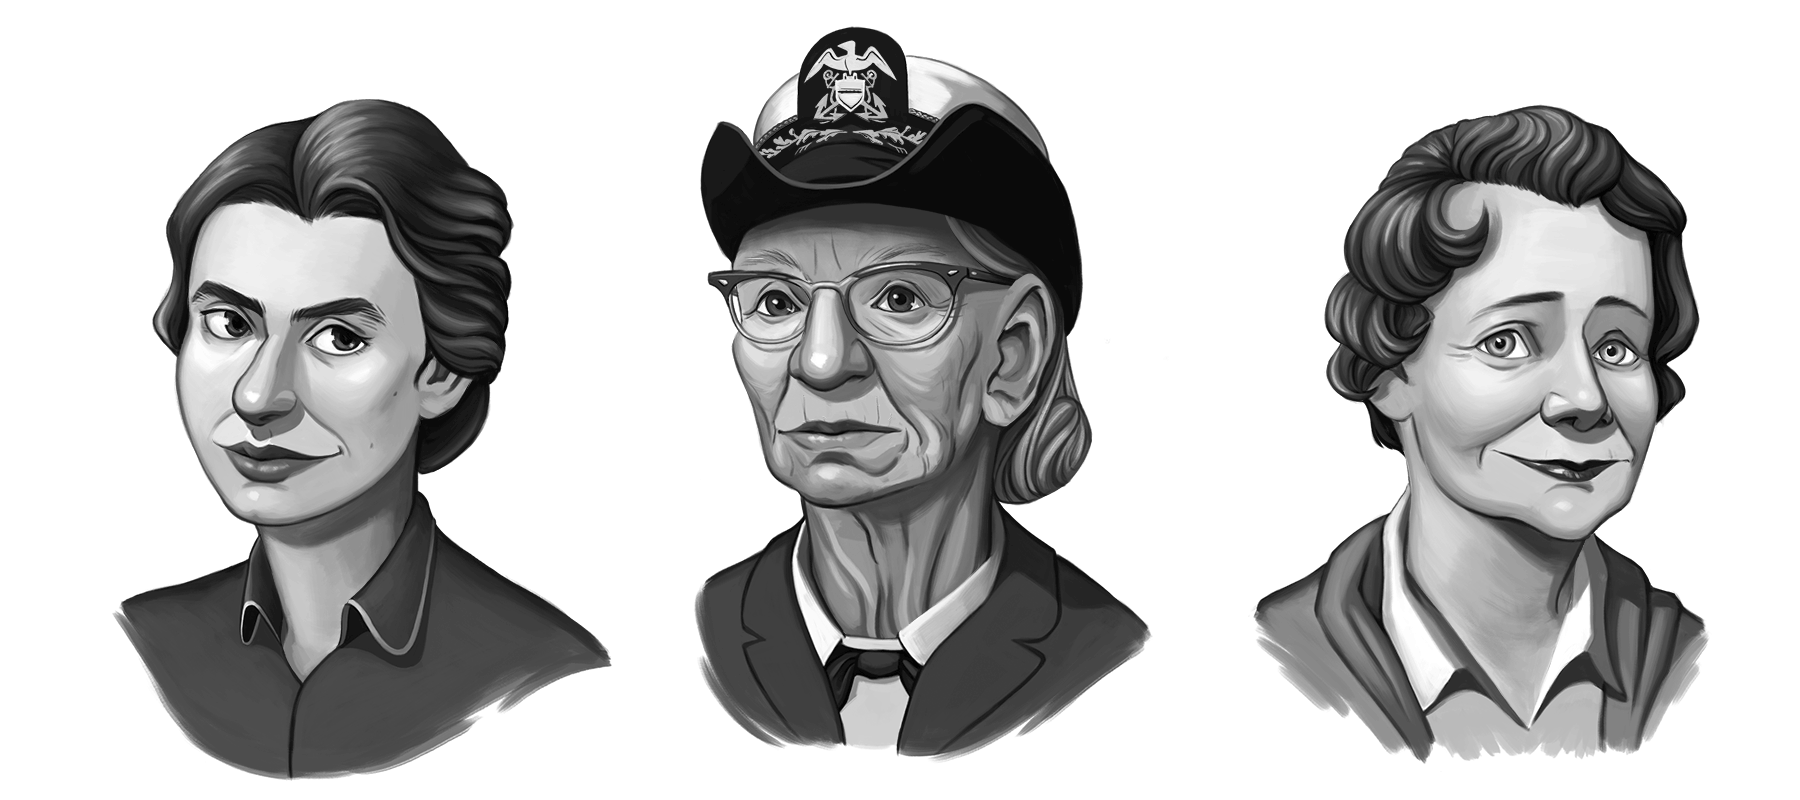 Ollerheads_Hopper_Carson_Franklin_Combined.png